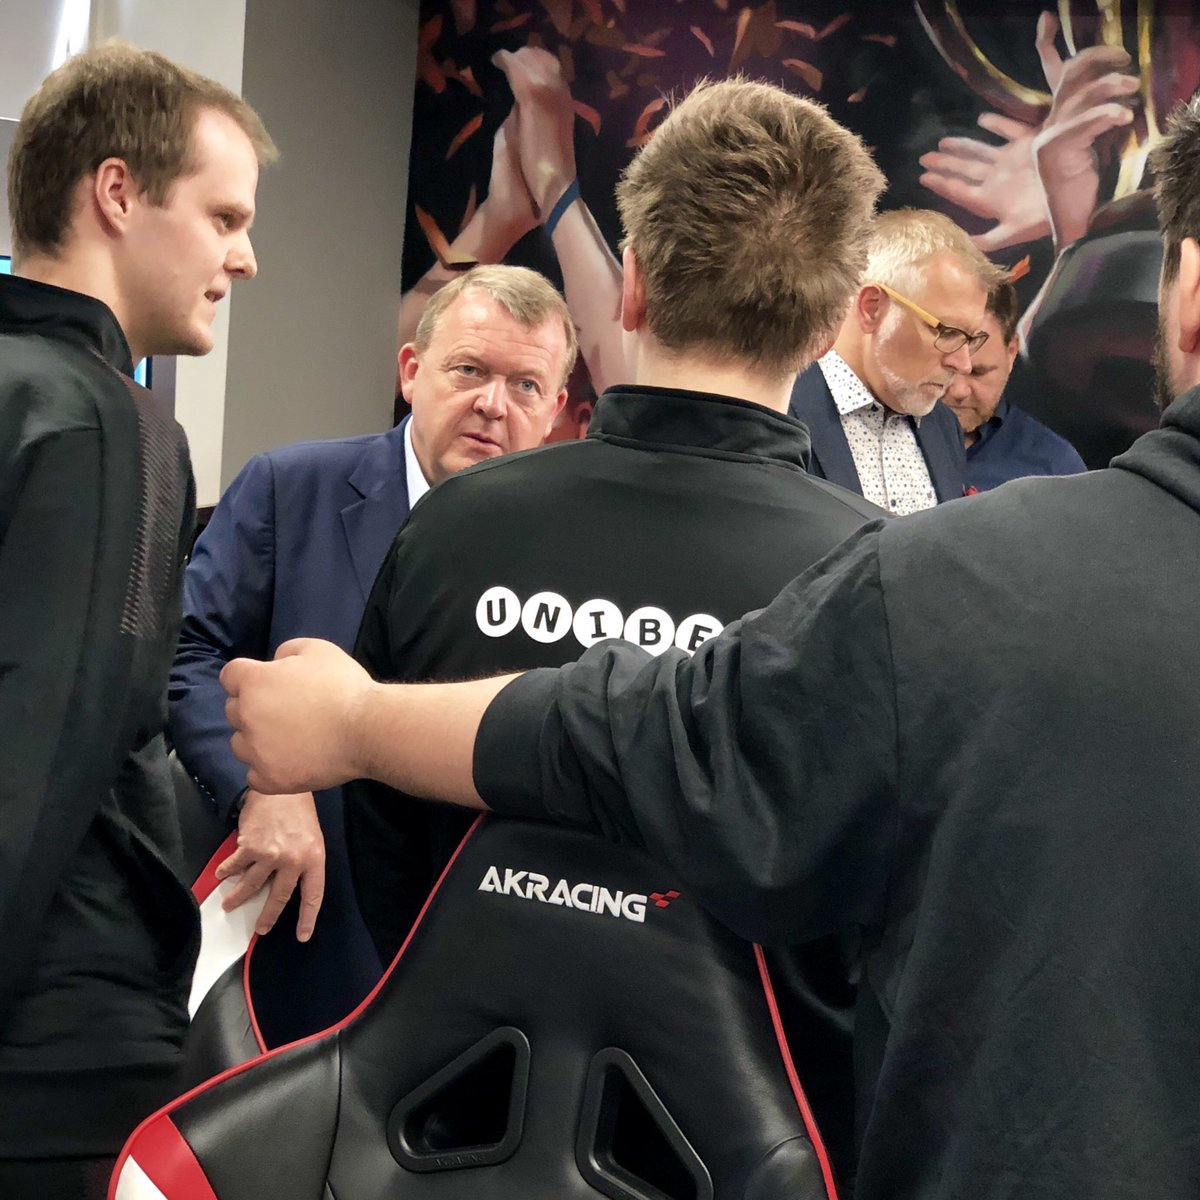 Prime minister @larsloekke visiting to talk and play against us in the office👍  Great to see all the support in Denmark towards esports these days🙏